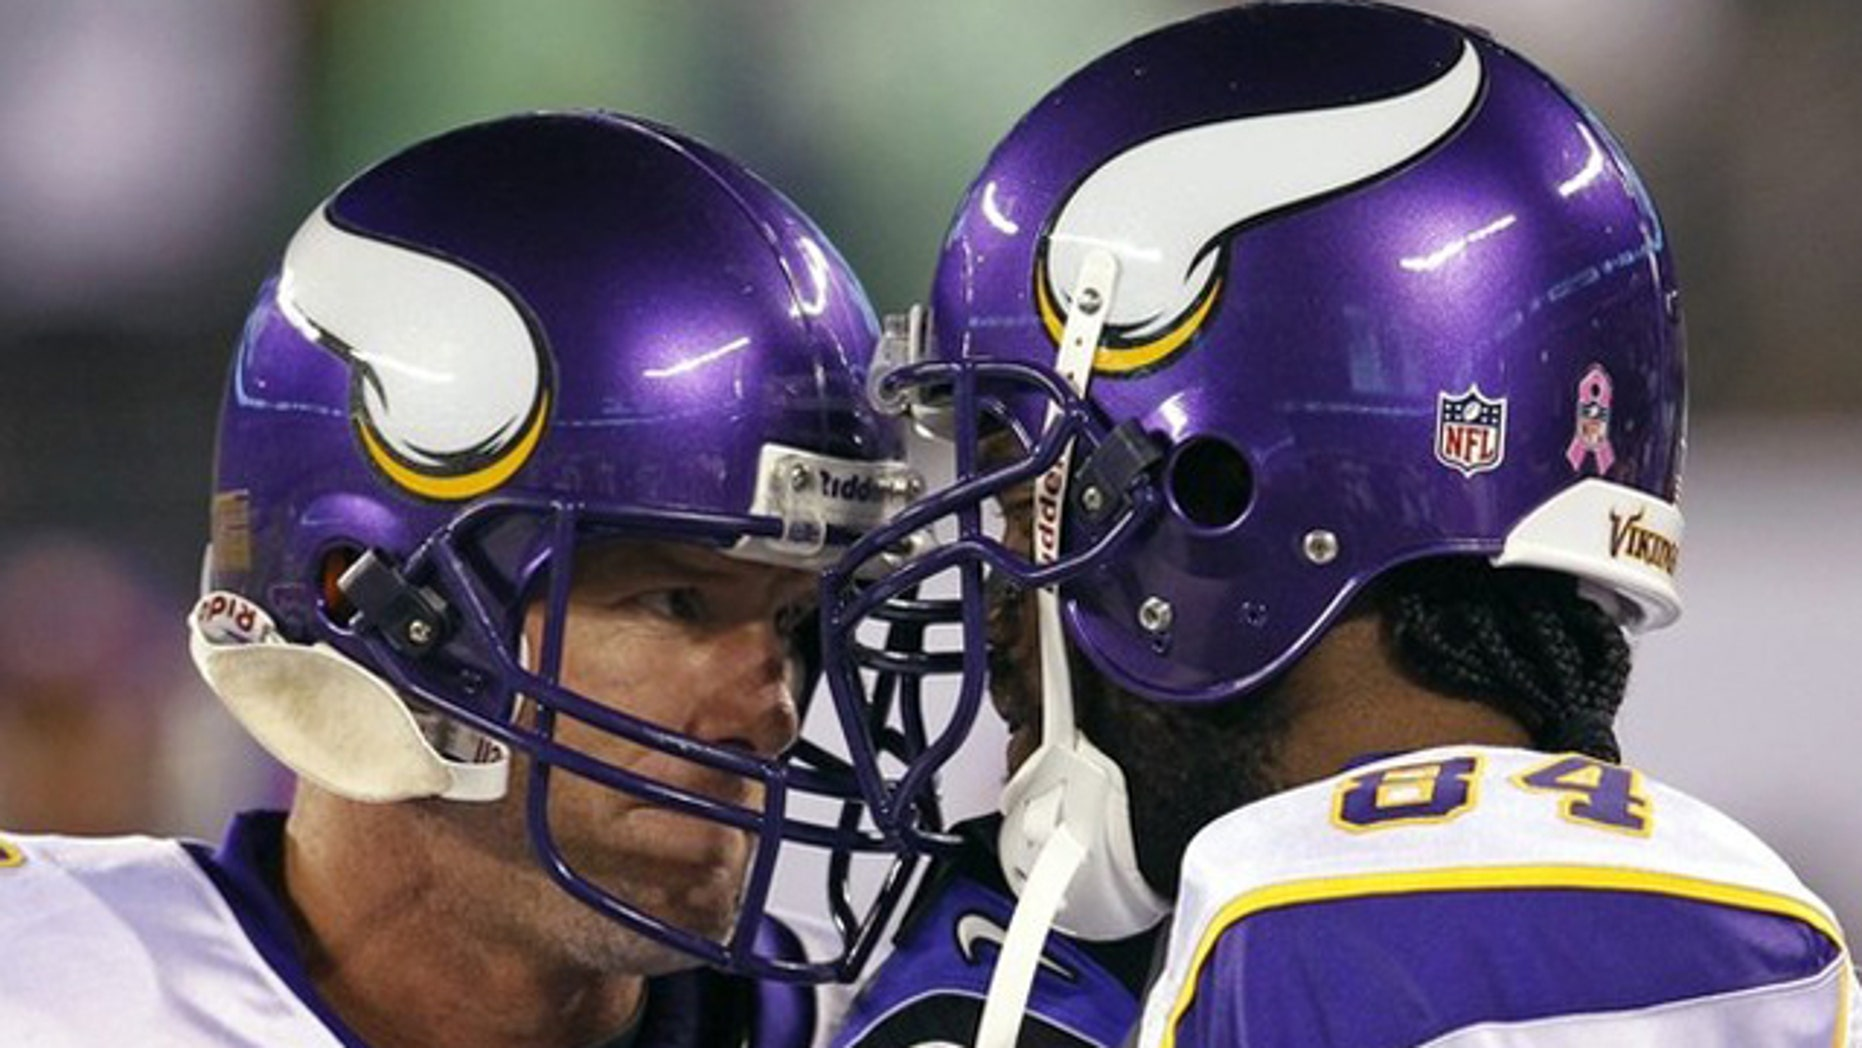 Oct. 11: Minnesota Viking wide receiver Randy Moss (R) and quarterback Brett Favre butt heads together on the bench before their NFL football game against the New York Jets in East Rutherford, New Jersey.